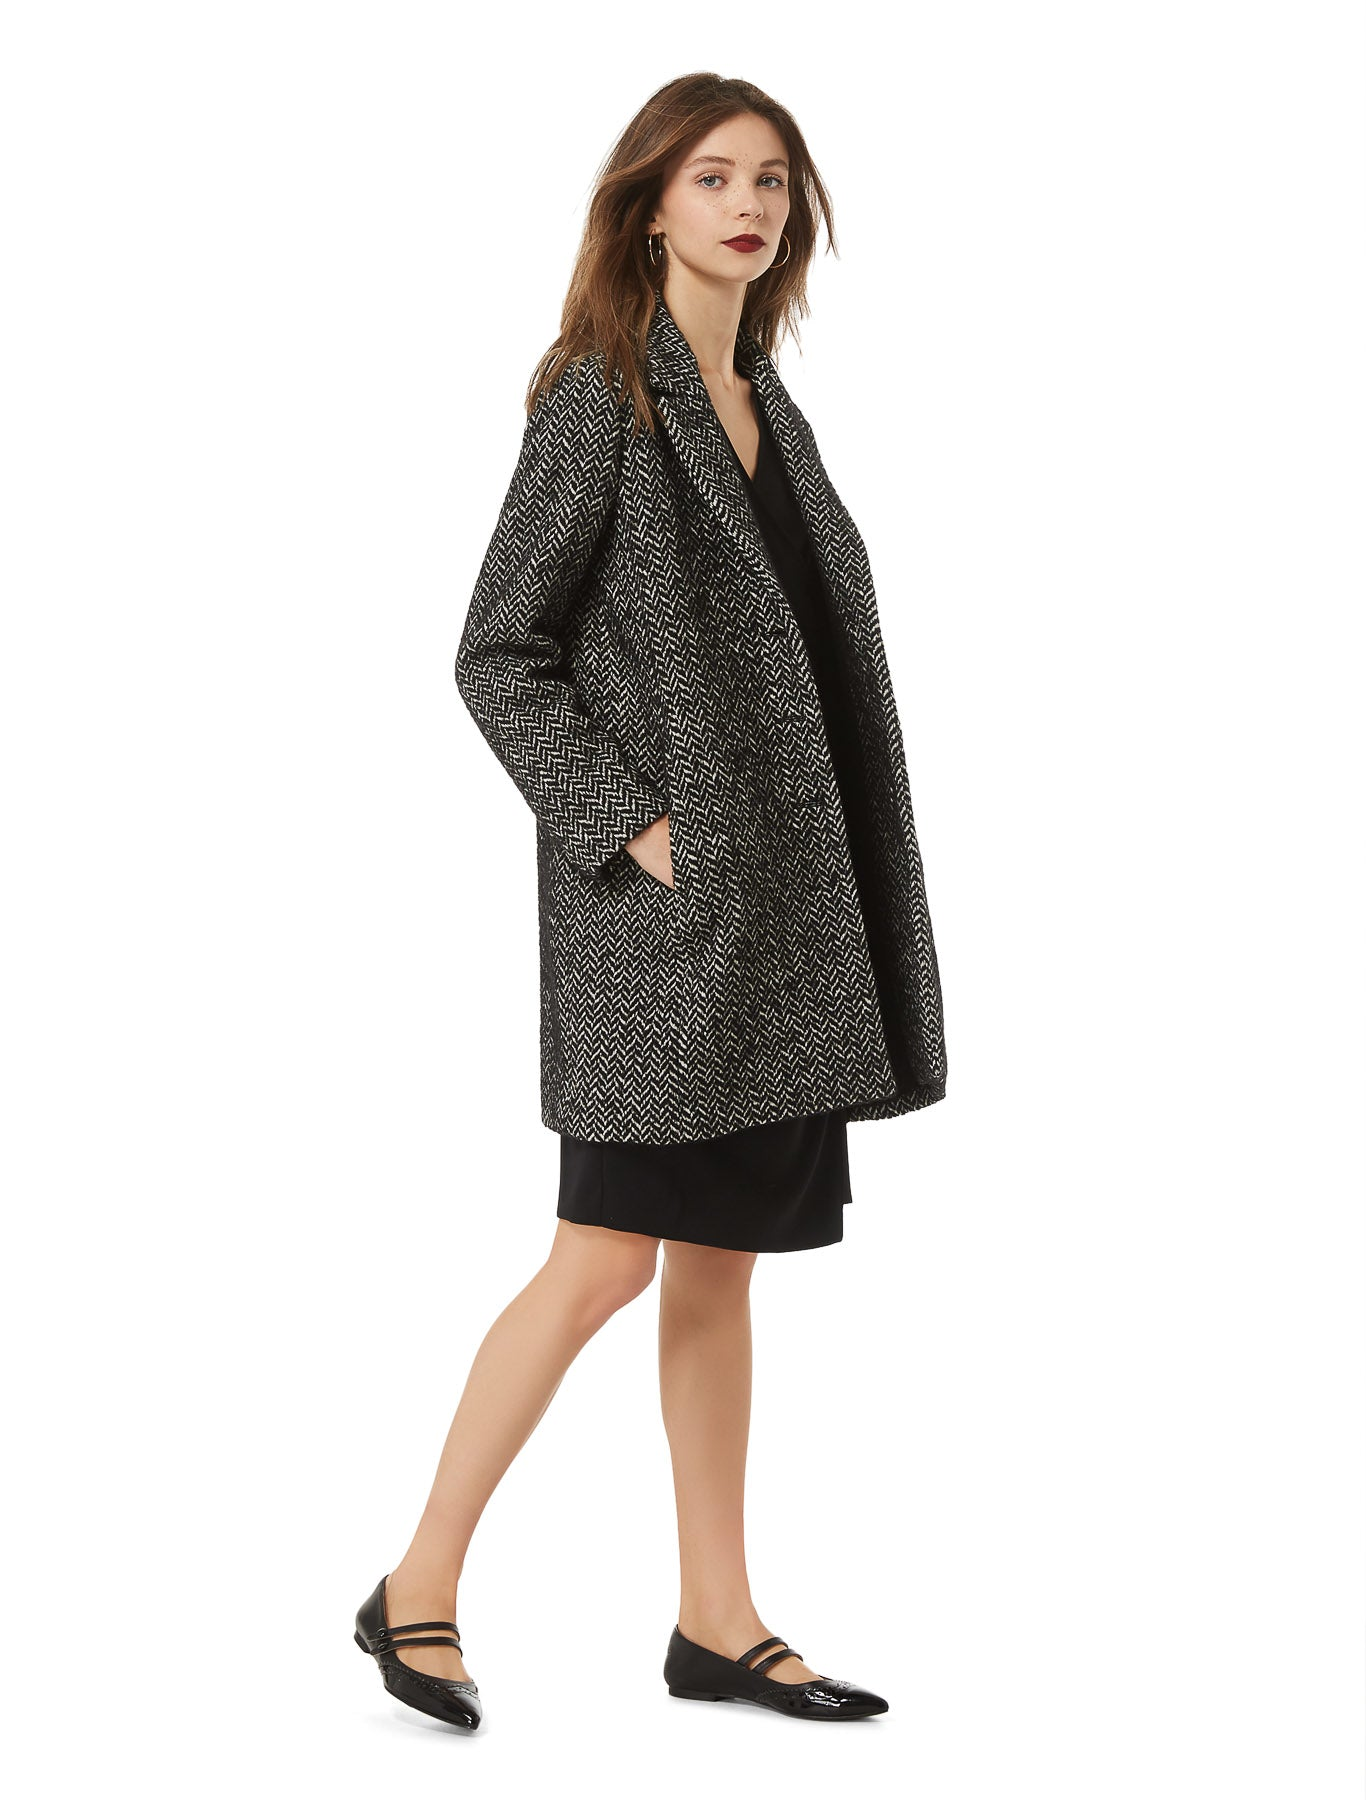 Venere Coat in Black & White Herringbone